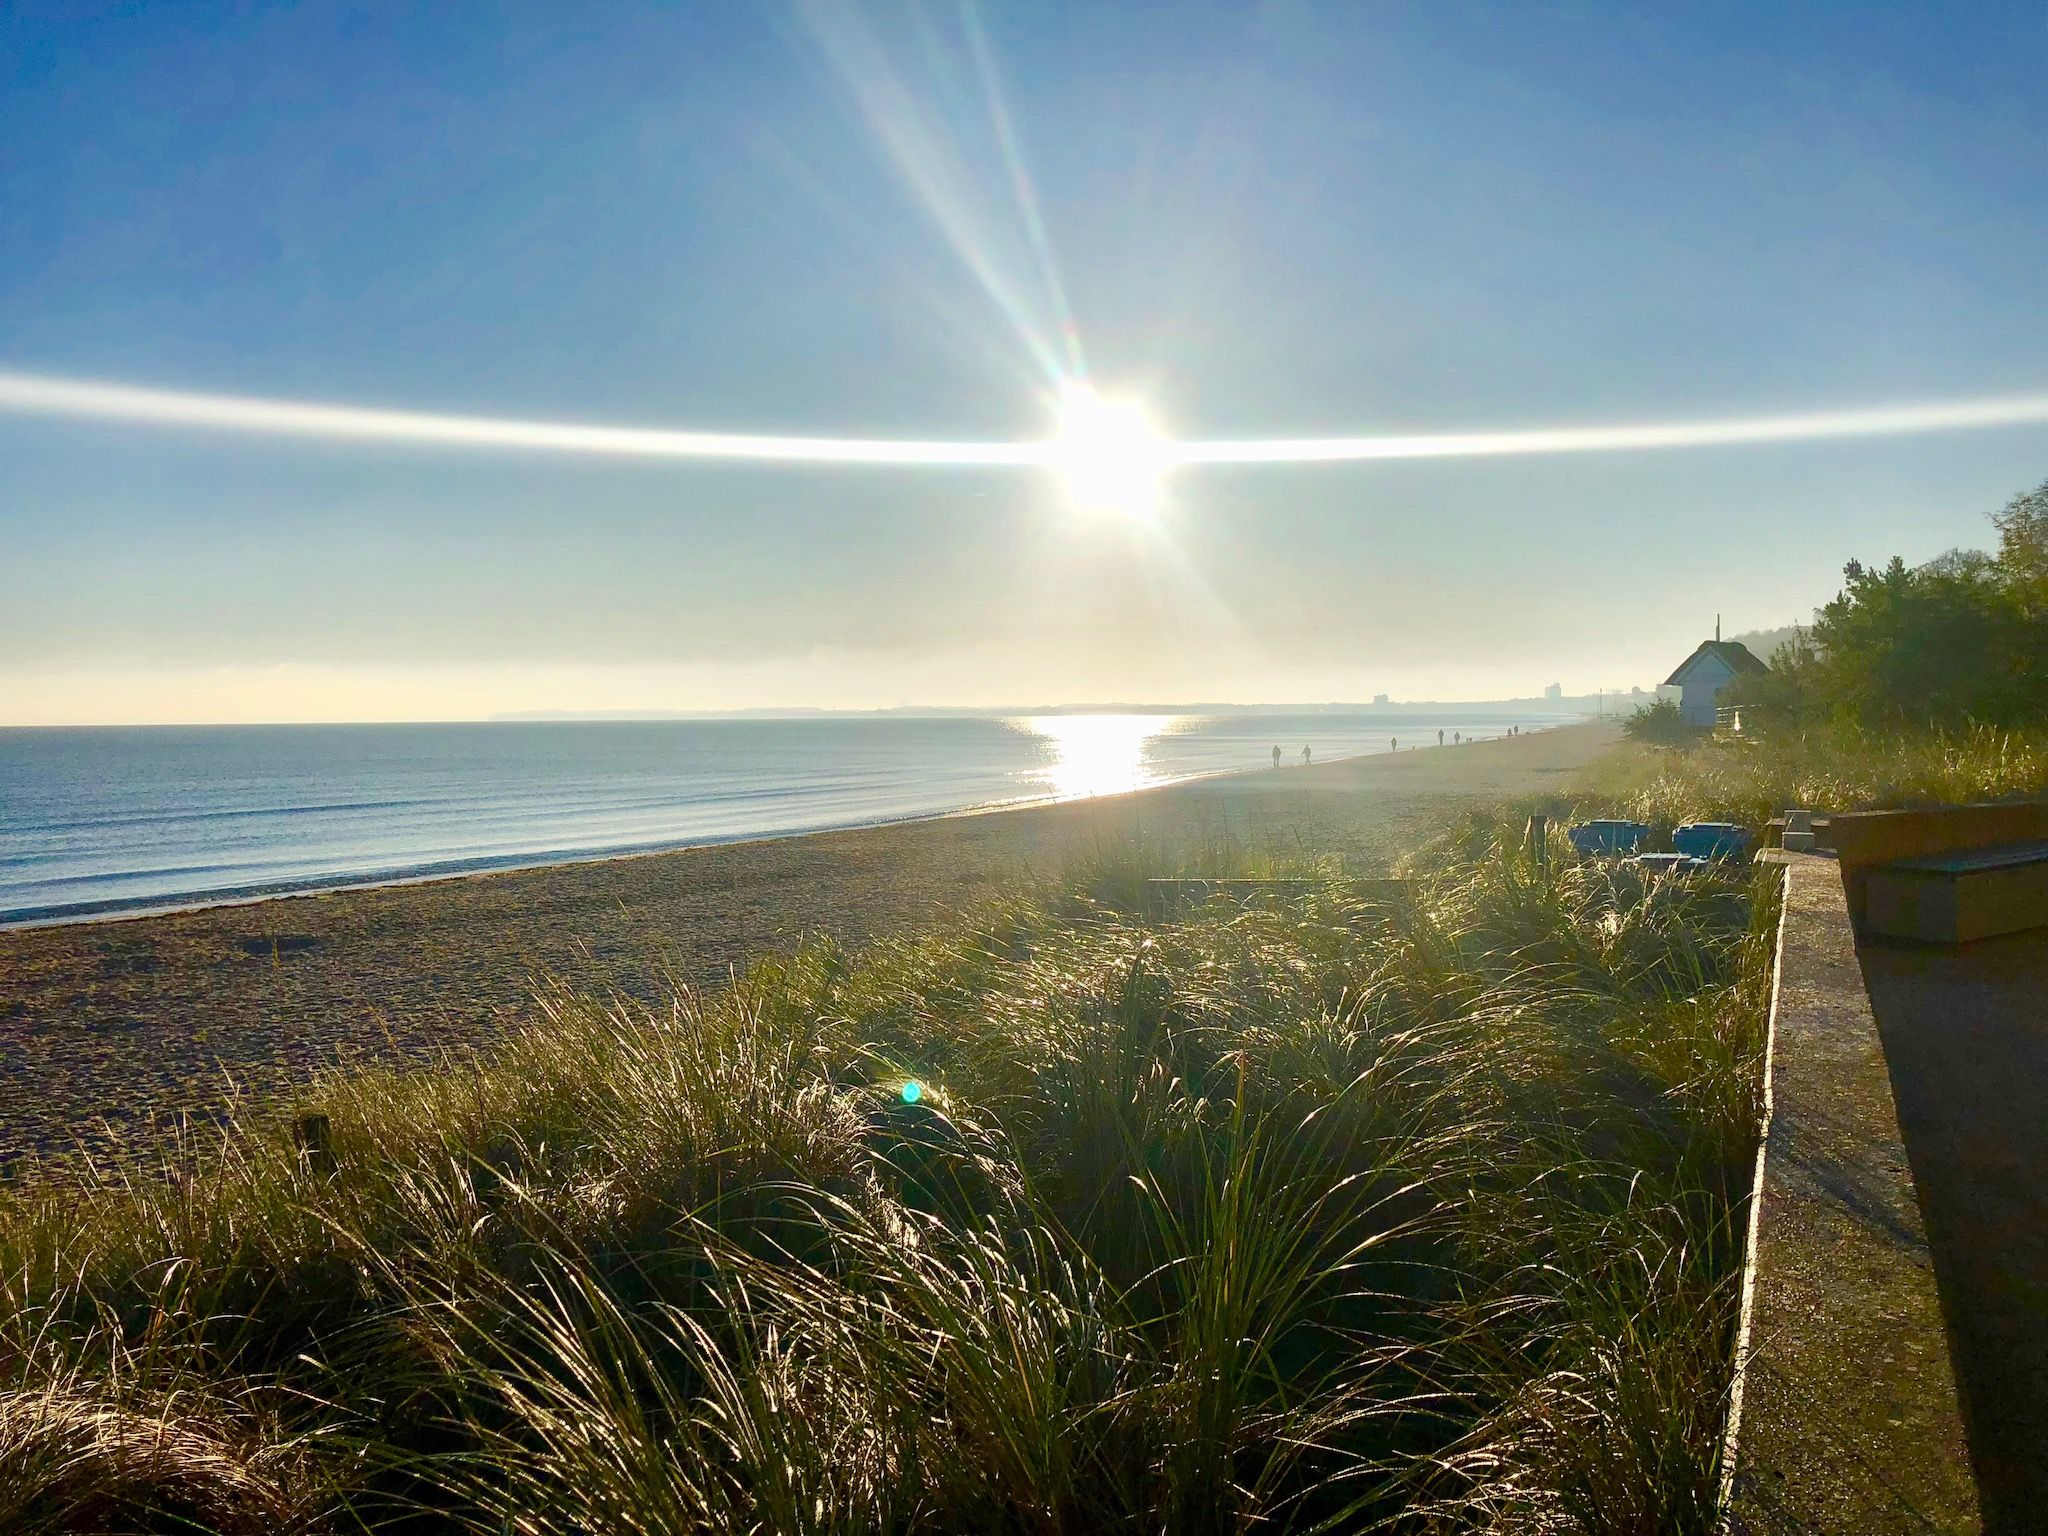 Baltic Sea holiday in autumn: that's how beautiful a November morning in Scharbeutz can be! Photo: Sascha Tegtmeyer